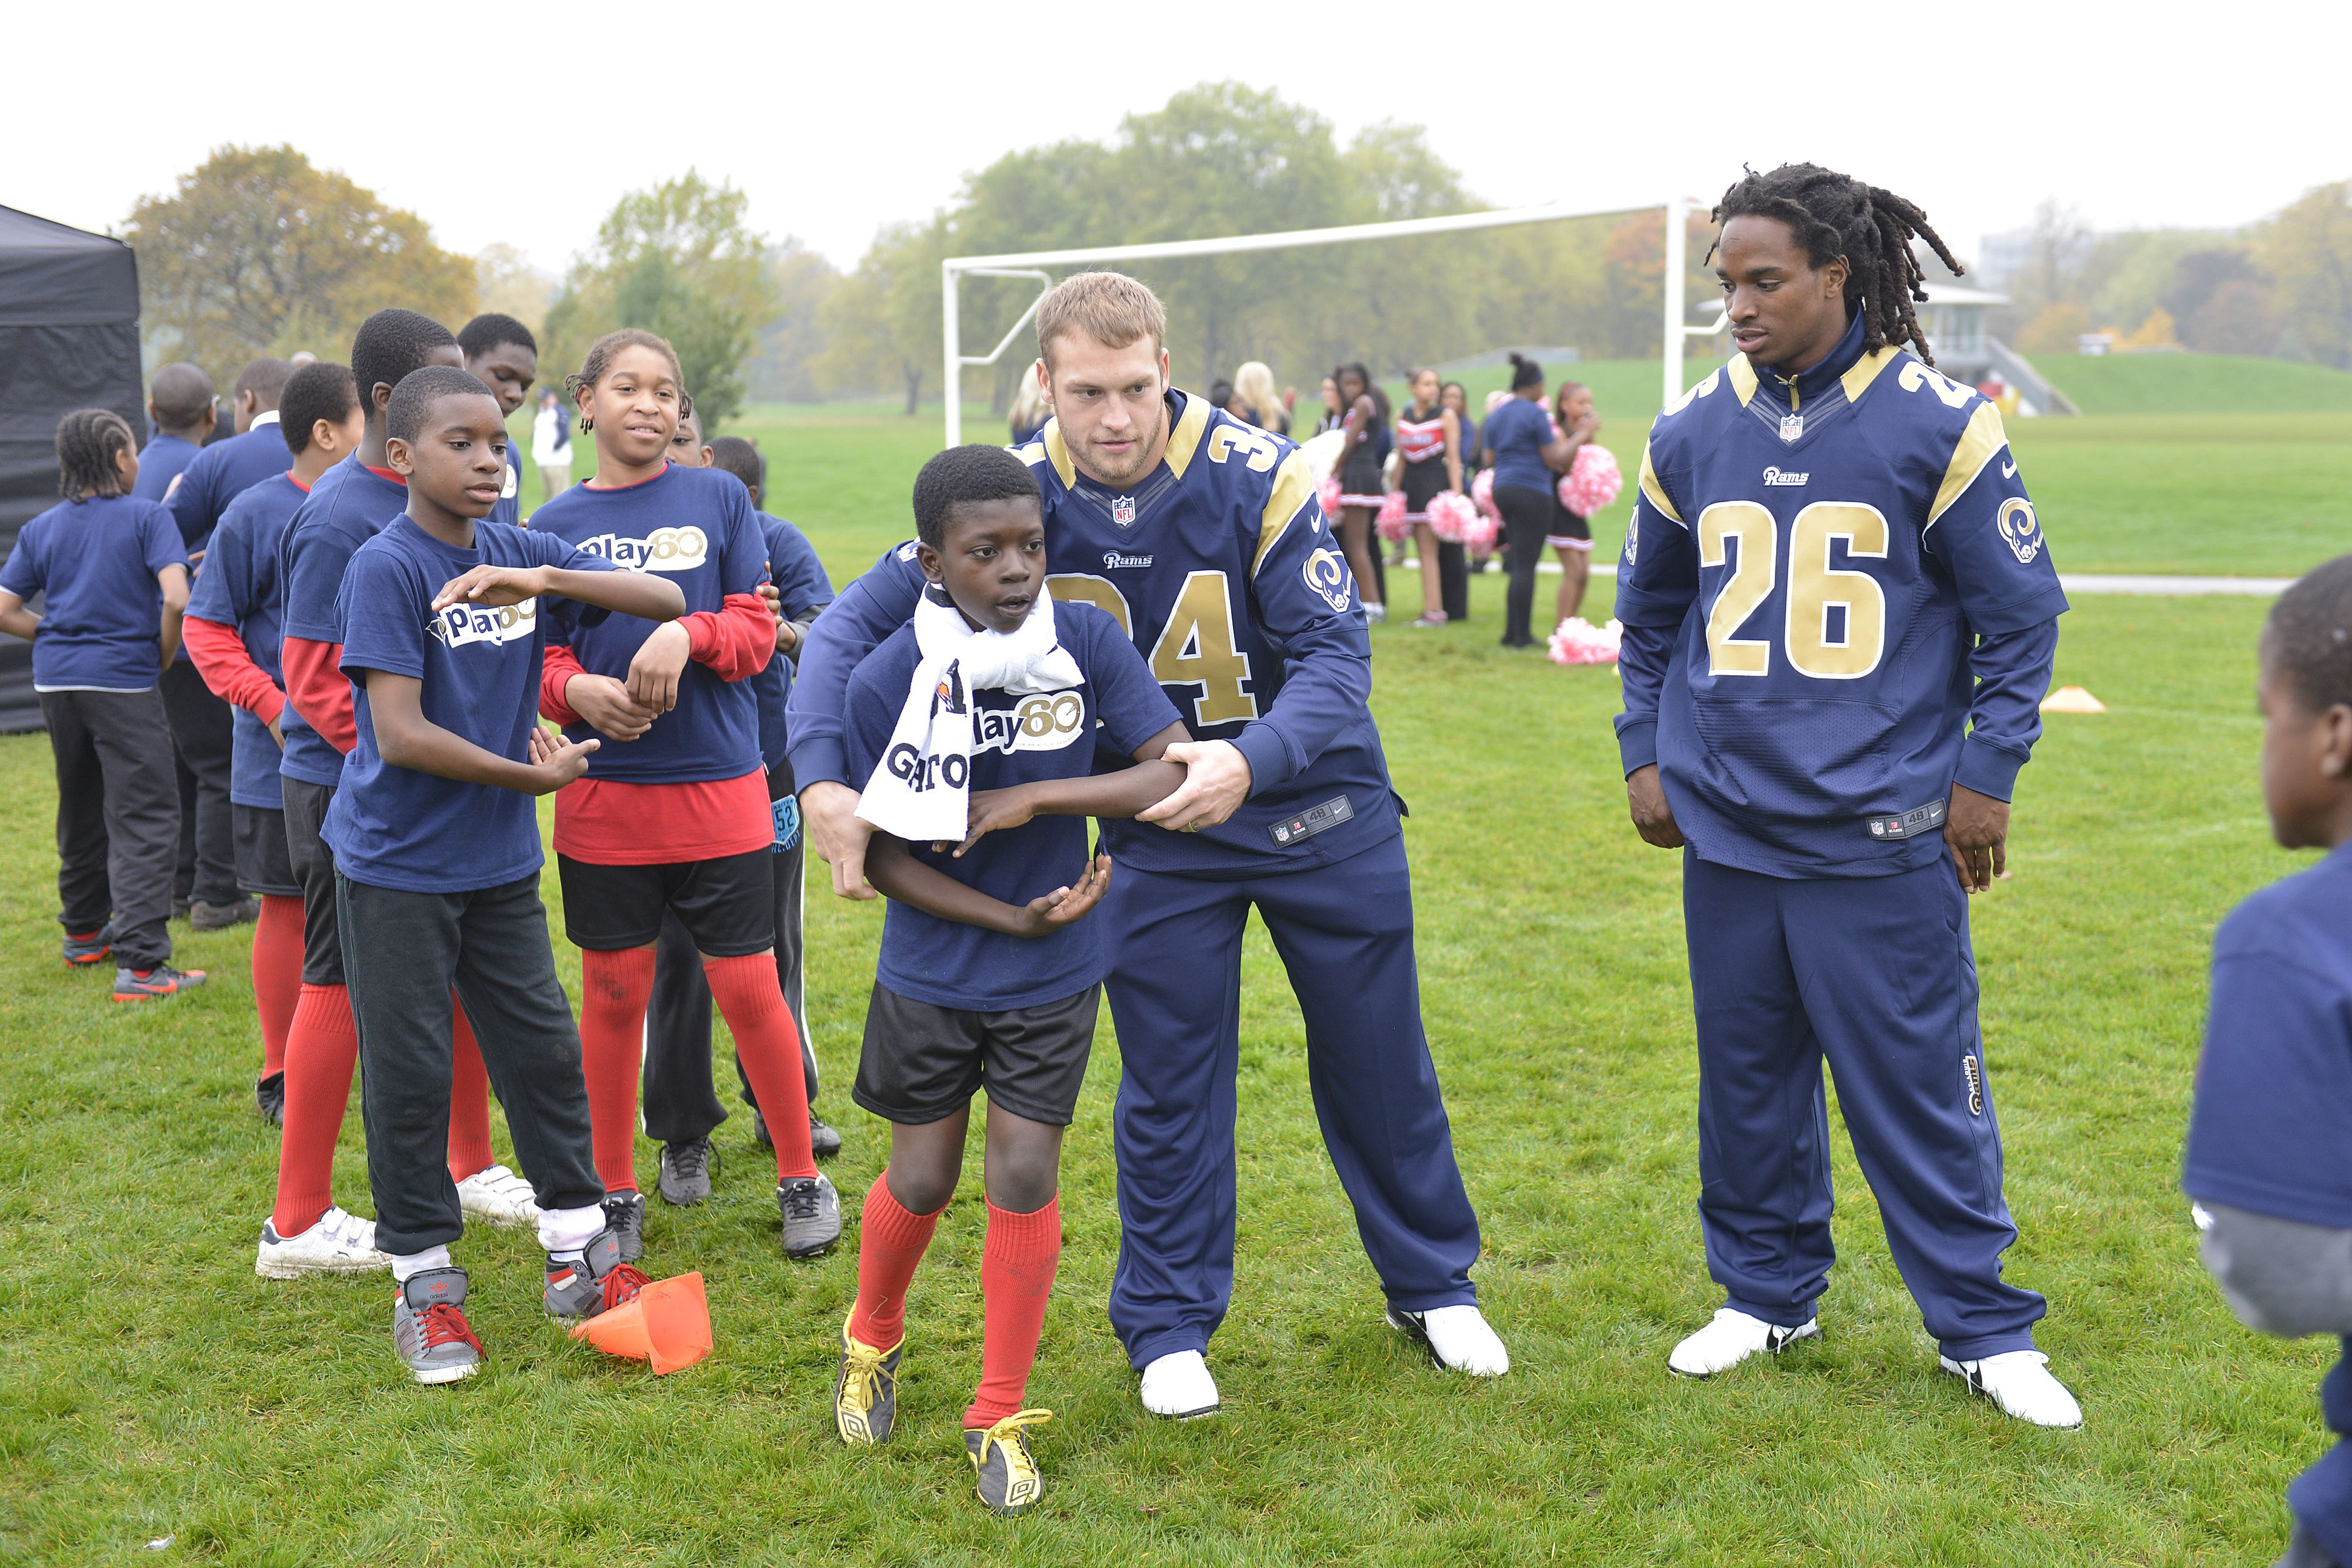 Rams Help Grow Game With Nfl Play 60 Play 60 Grow Games Nfl